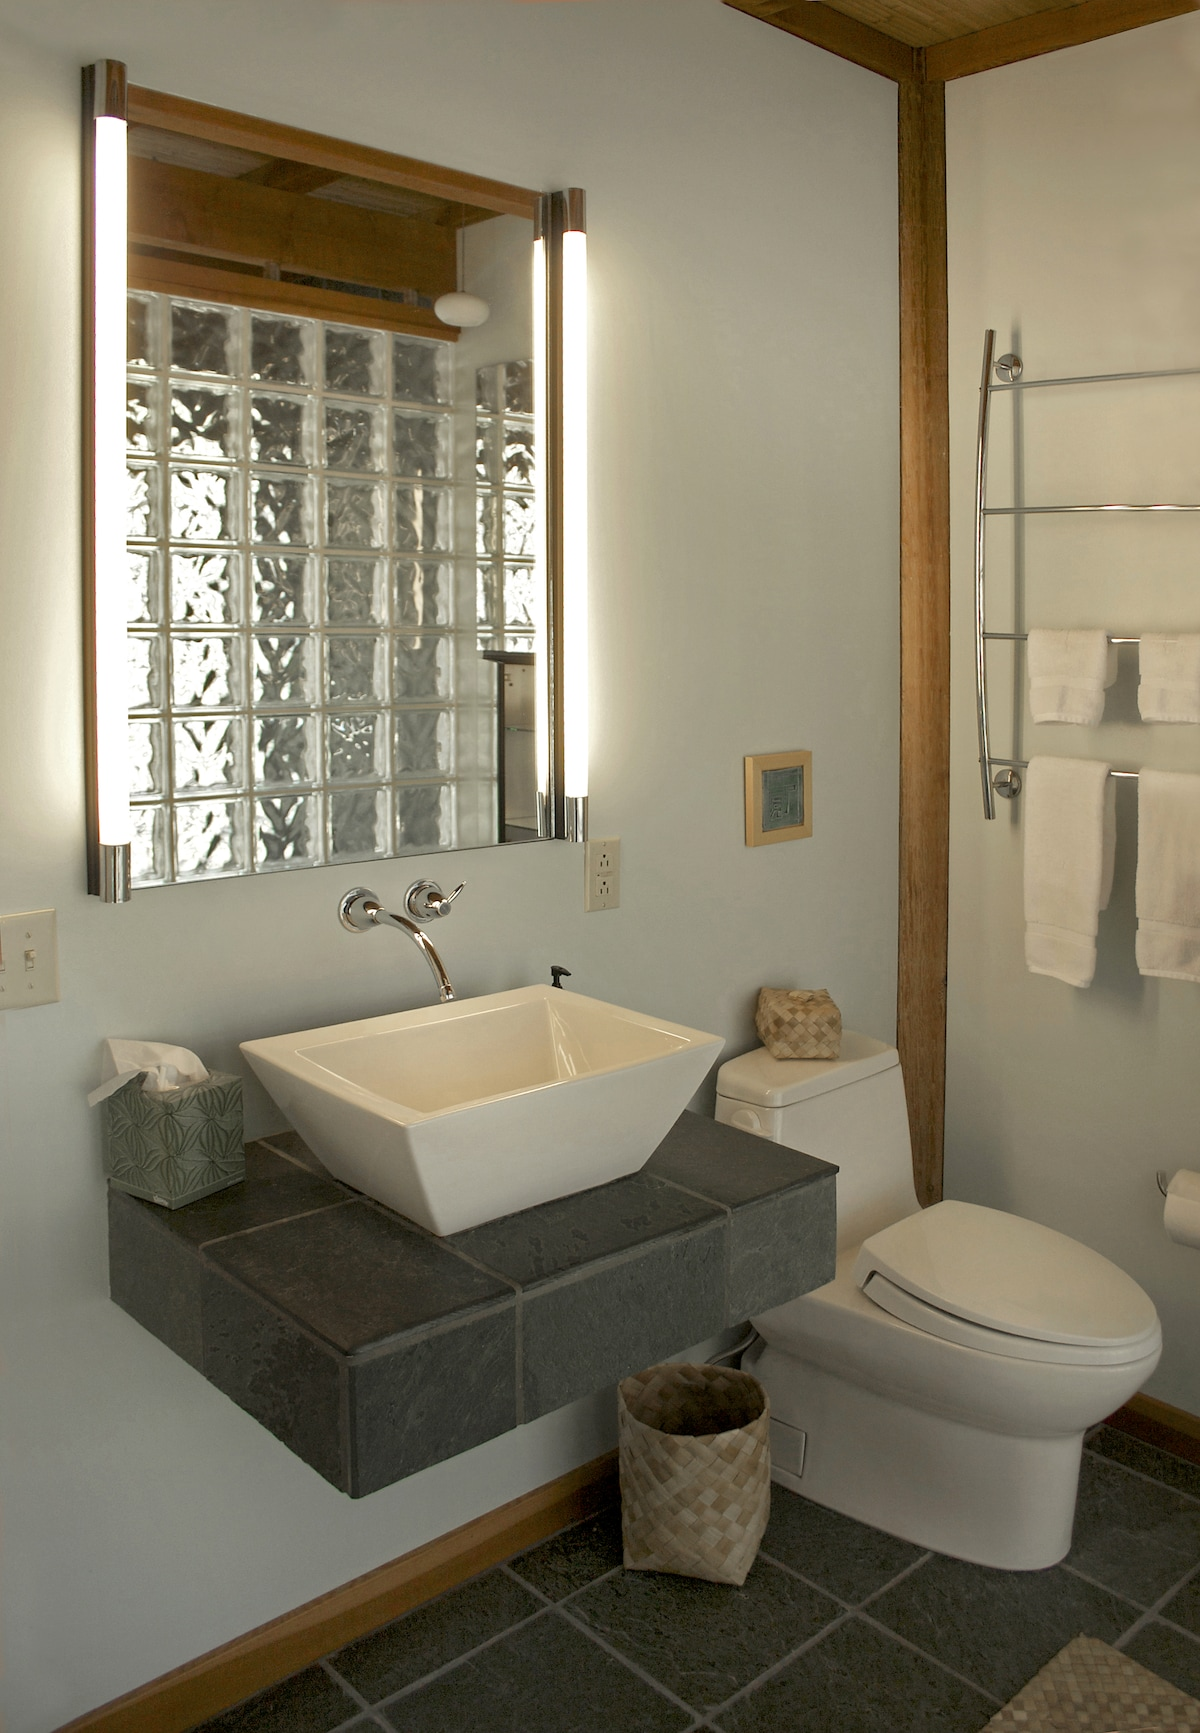 bathroom with slate vanity and vessel sink- glass block shower in reflection